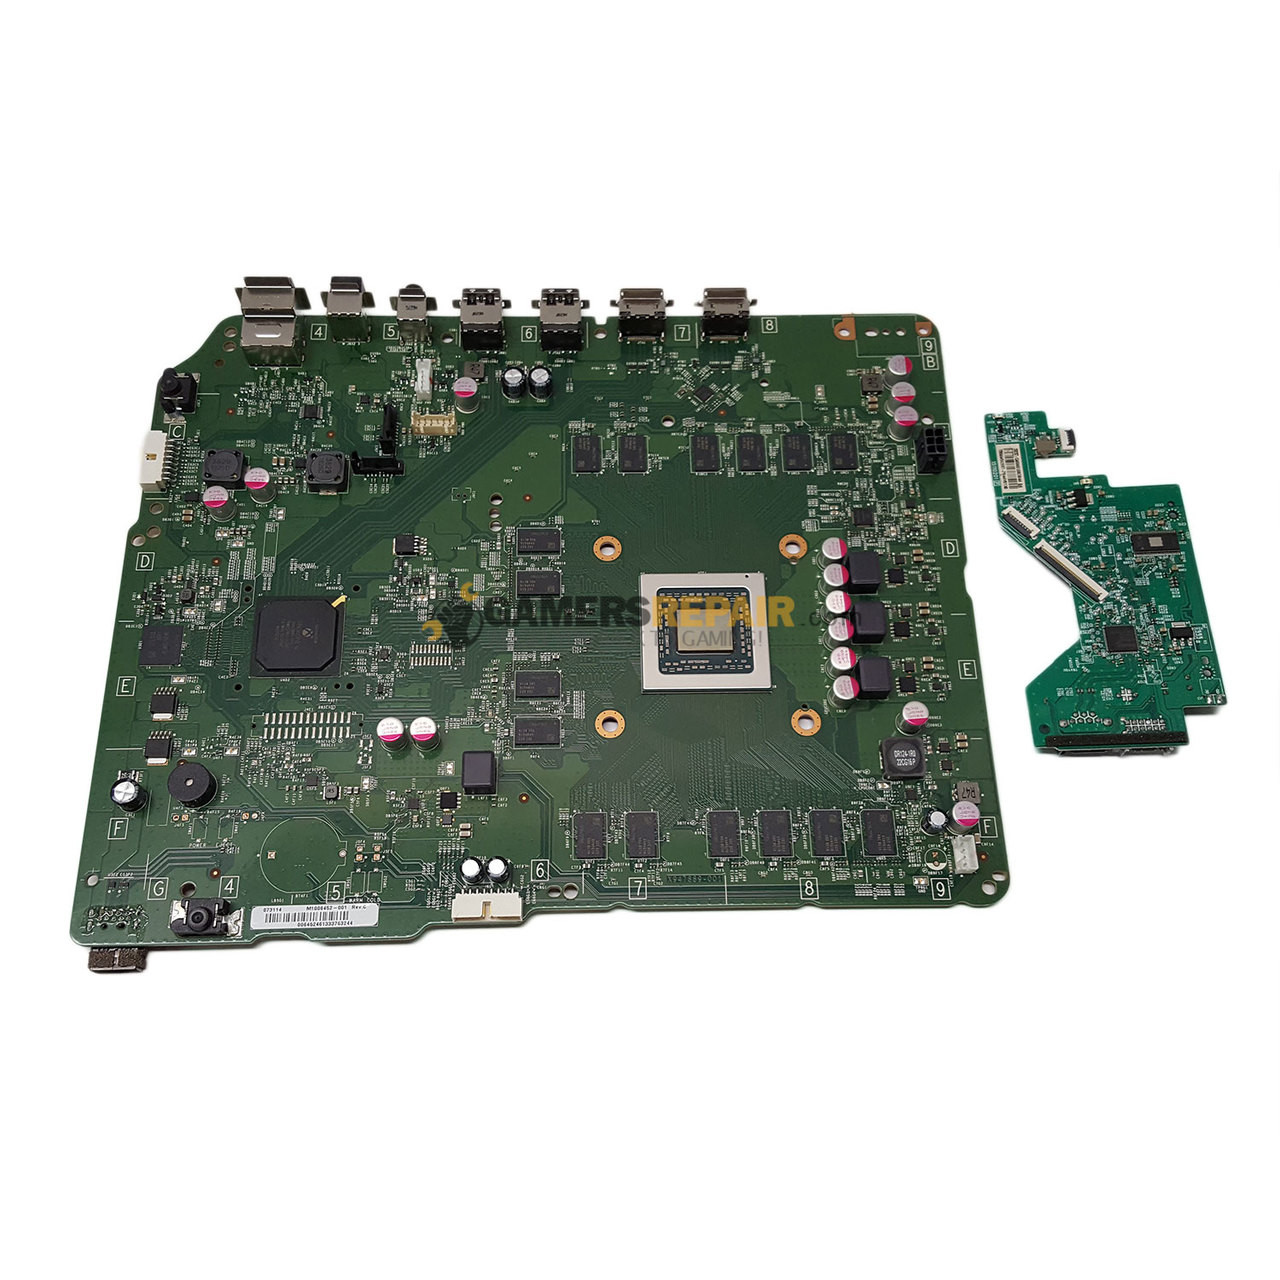 Xbox 360 s motherboard schematic wiring diagram portal xbox one s replacement motherboard rh gamersrepair com xbox 360 motherboard components xbox 360 motherboard diagram ccuart Image collections